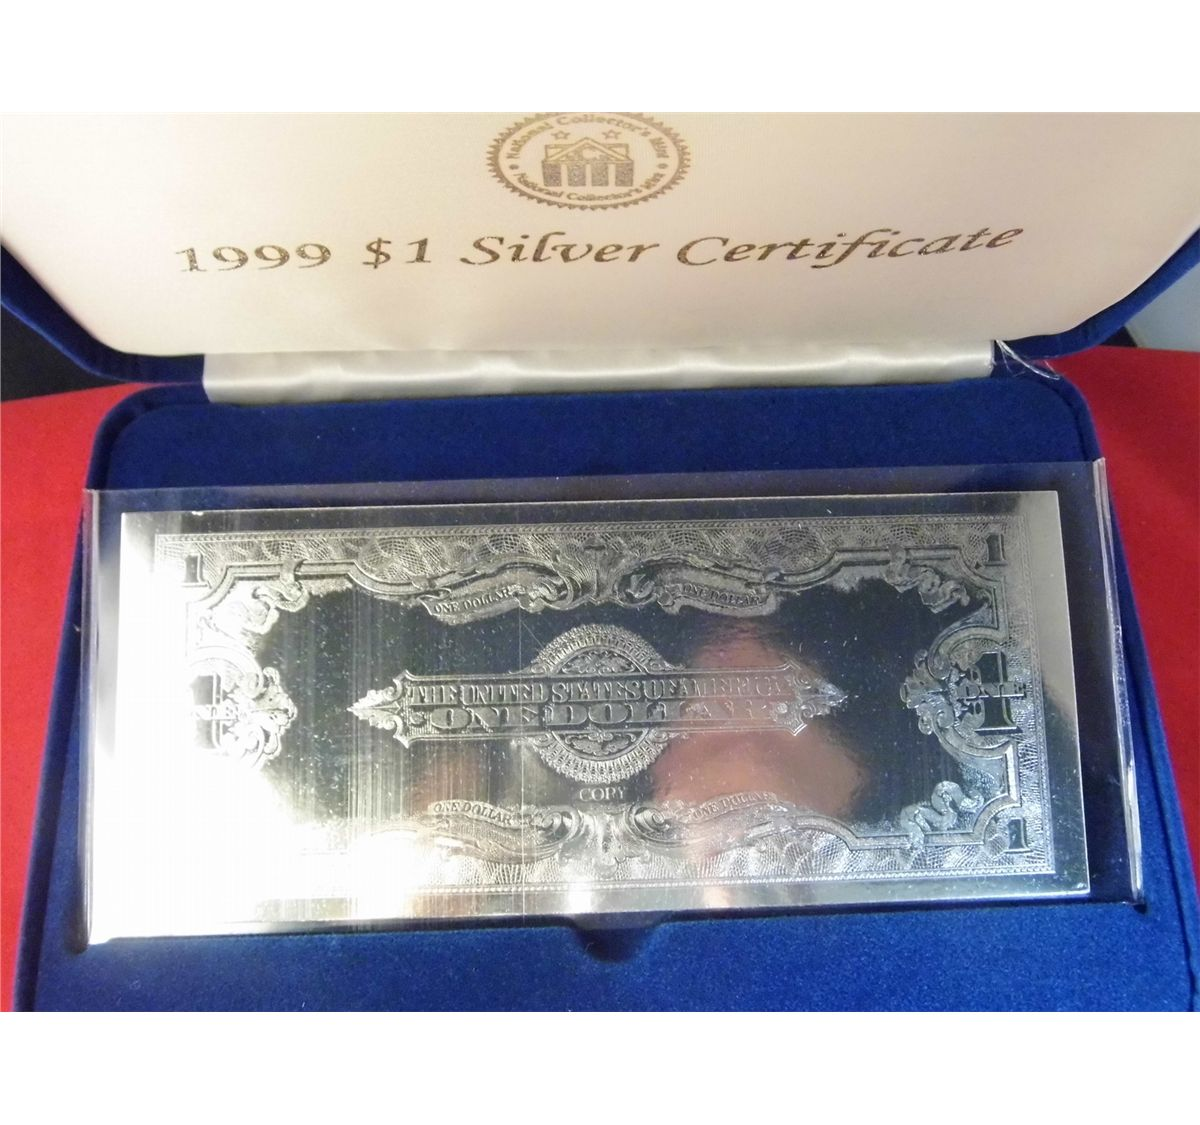 National collectors mint 1999 1 silver certificate note image 3 national collectors mint 1999 1 silver certificate note perimeter 21 xflitez Choice Image